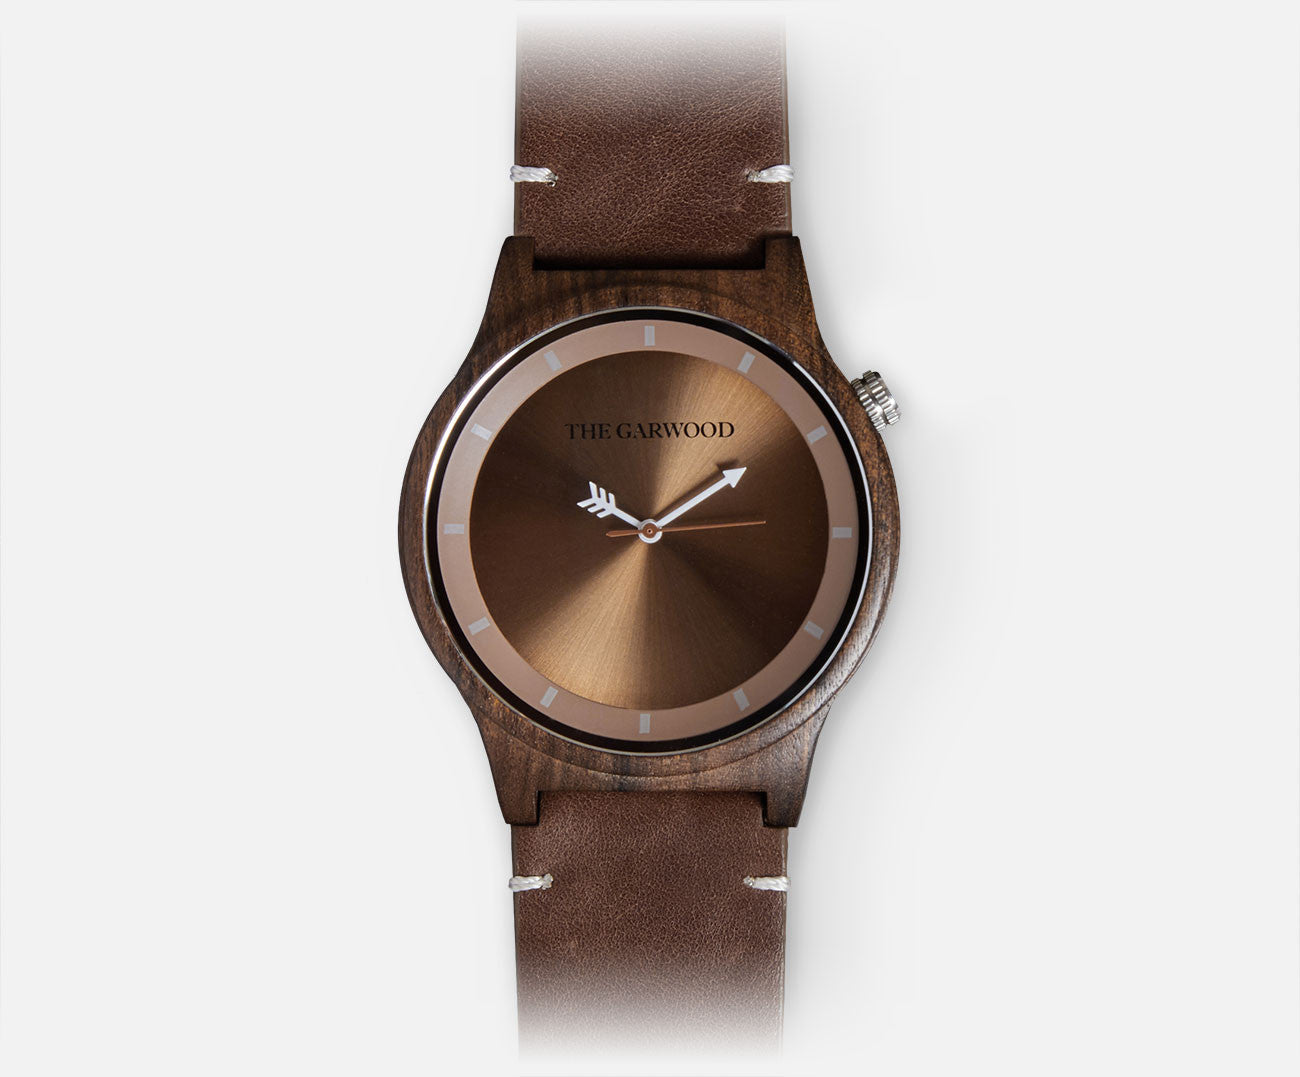 image synchrony grain watches amber wood product products